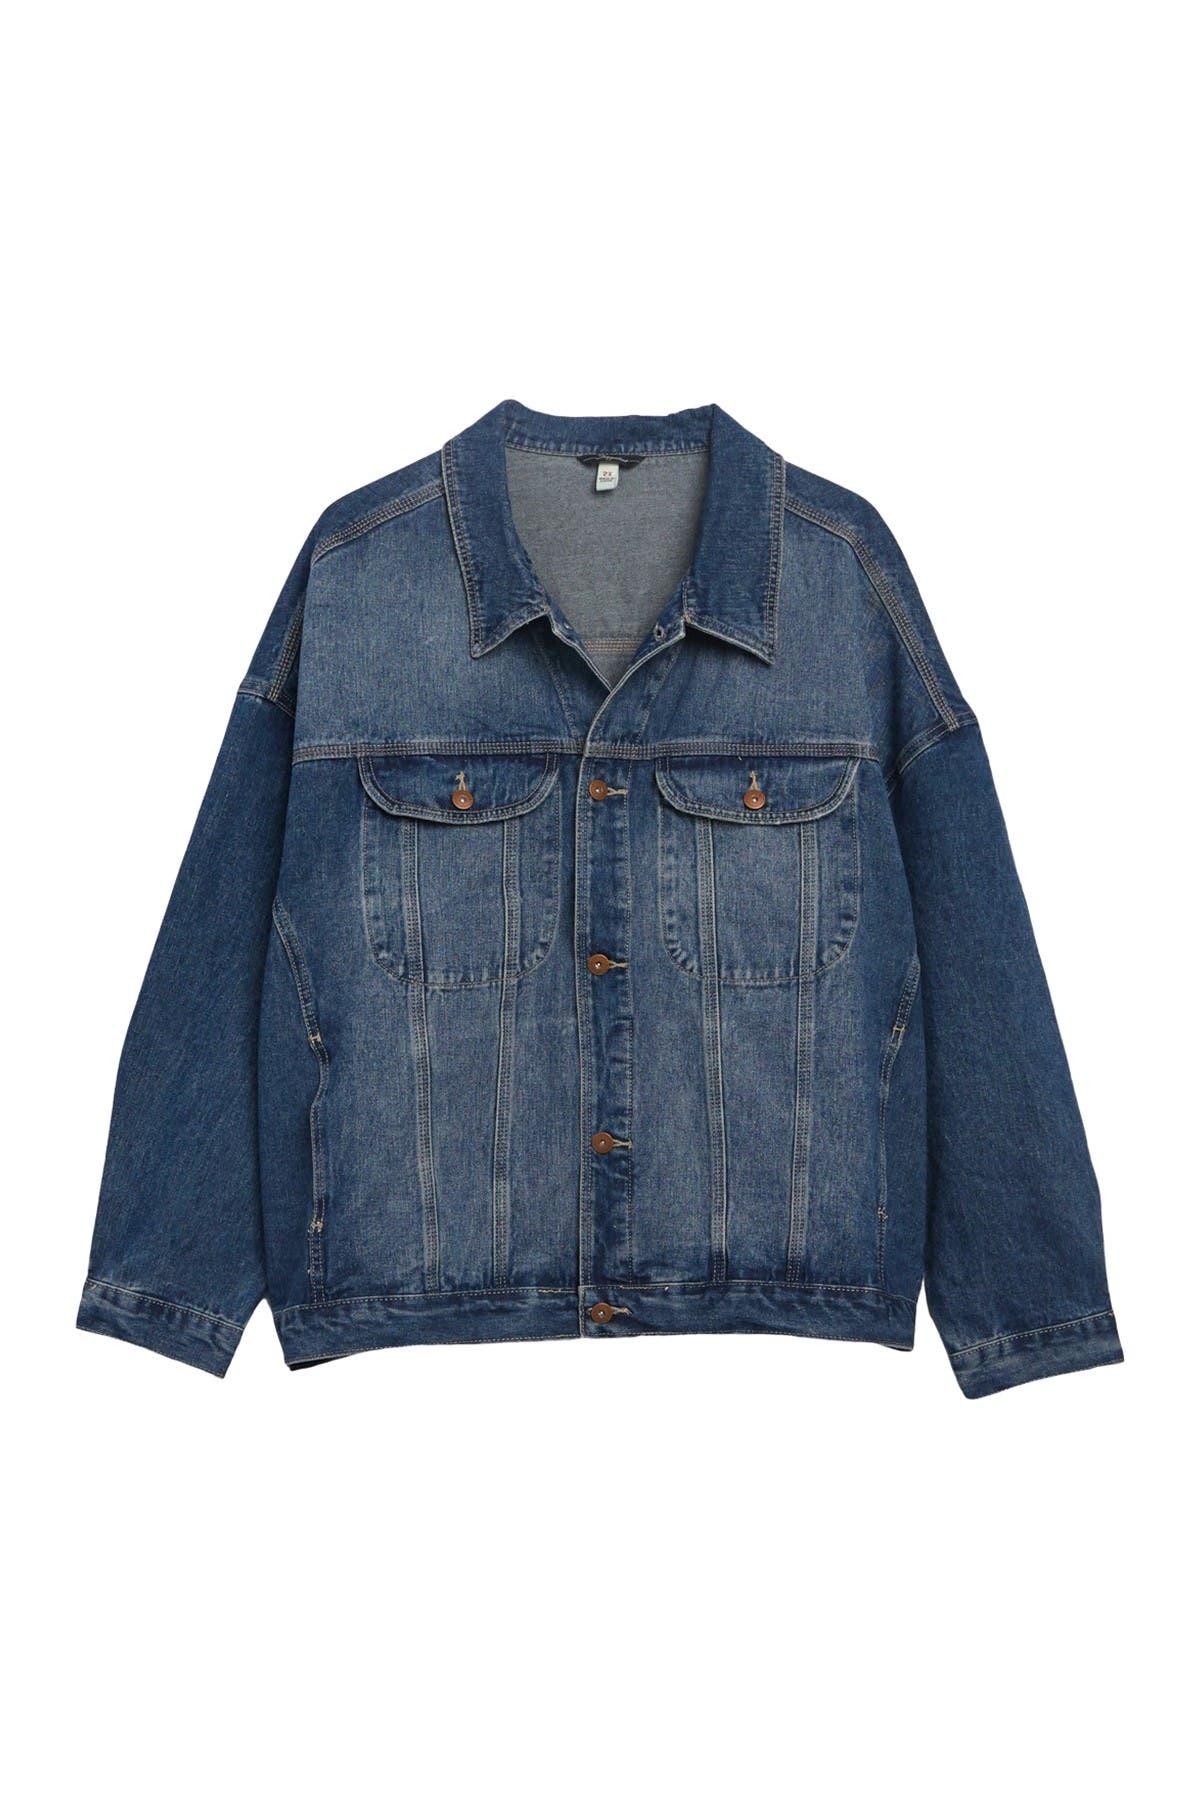 Image of SUPPLIES BY UNIONBAY Brecan Relaxed Denim Jacket